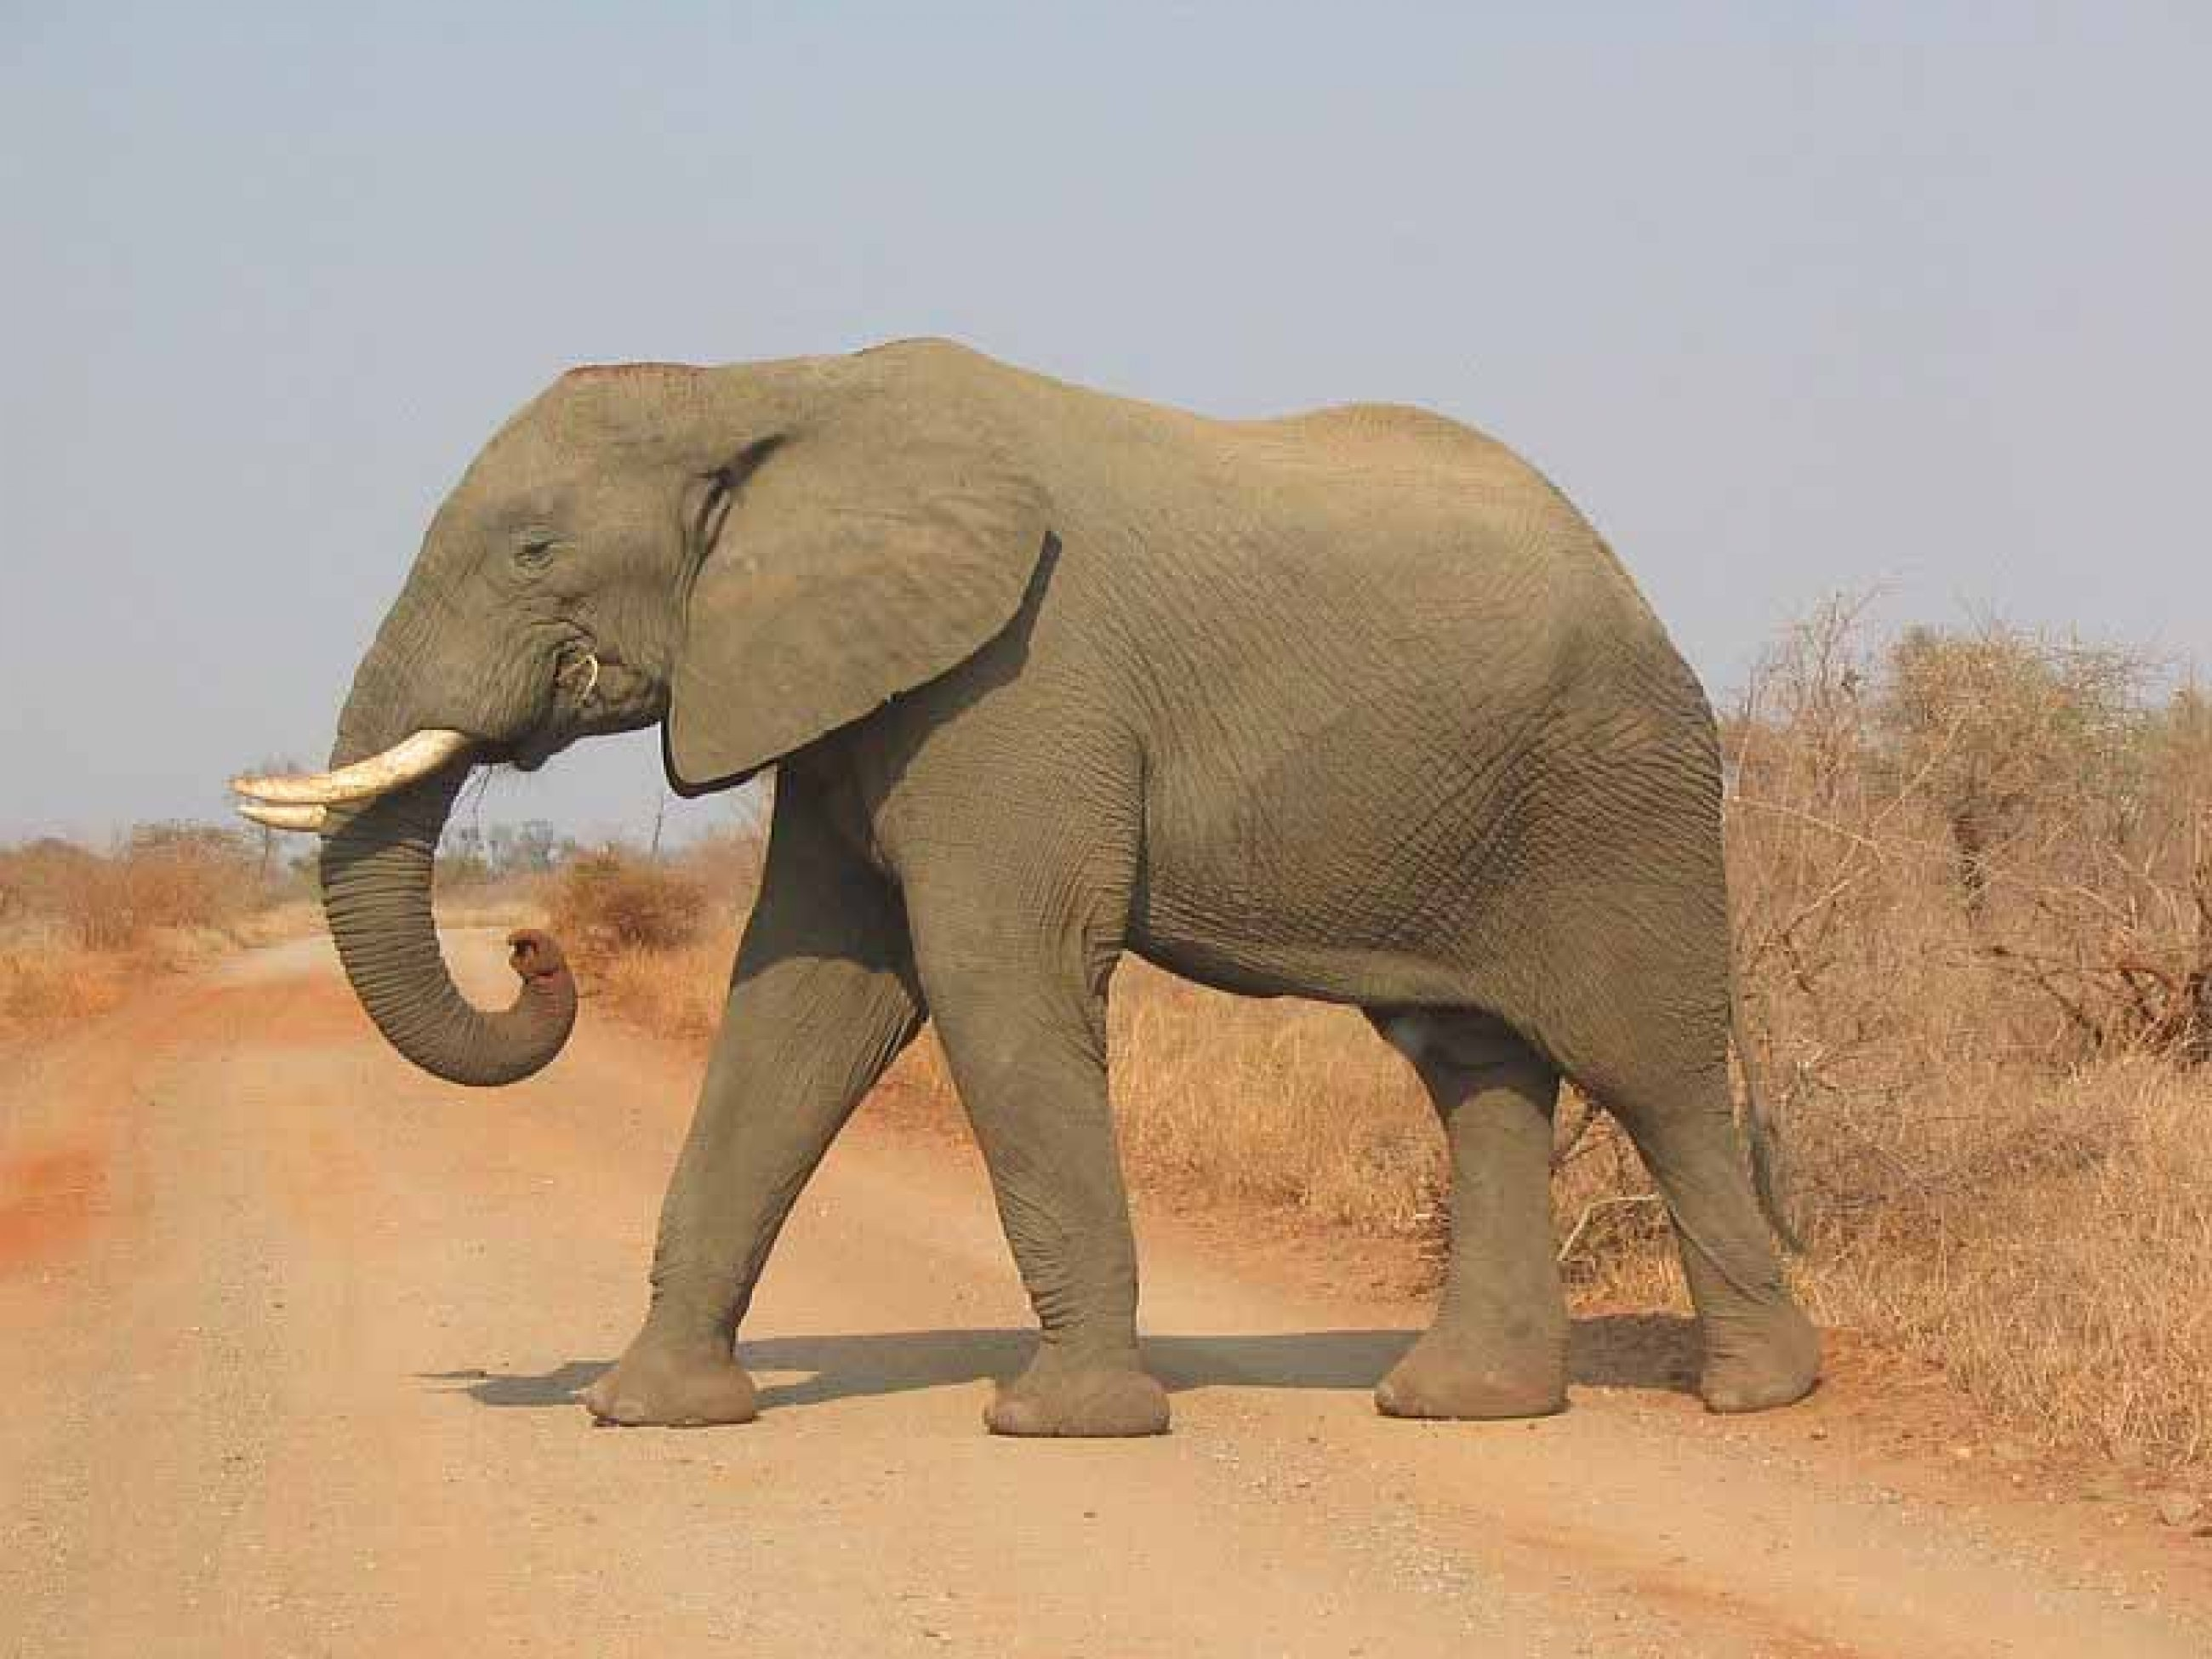 https://bubo.sk/uploads/galleries/7526/800px-elephant-side-view-kruger.jpg